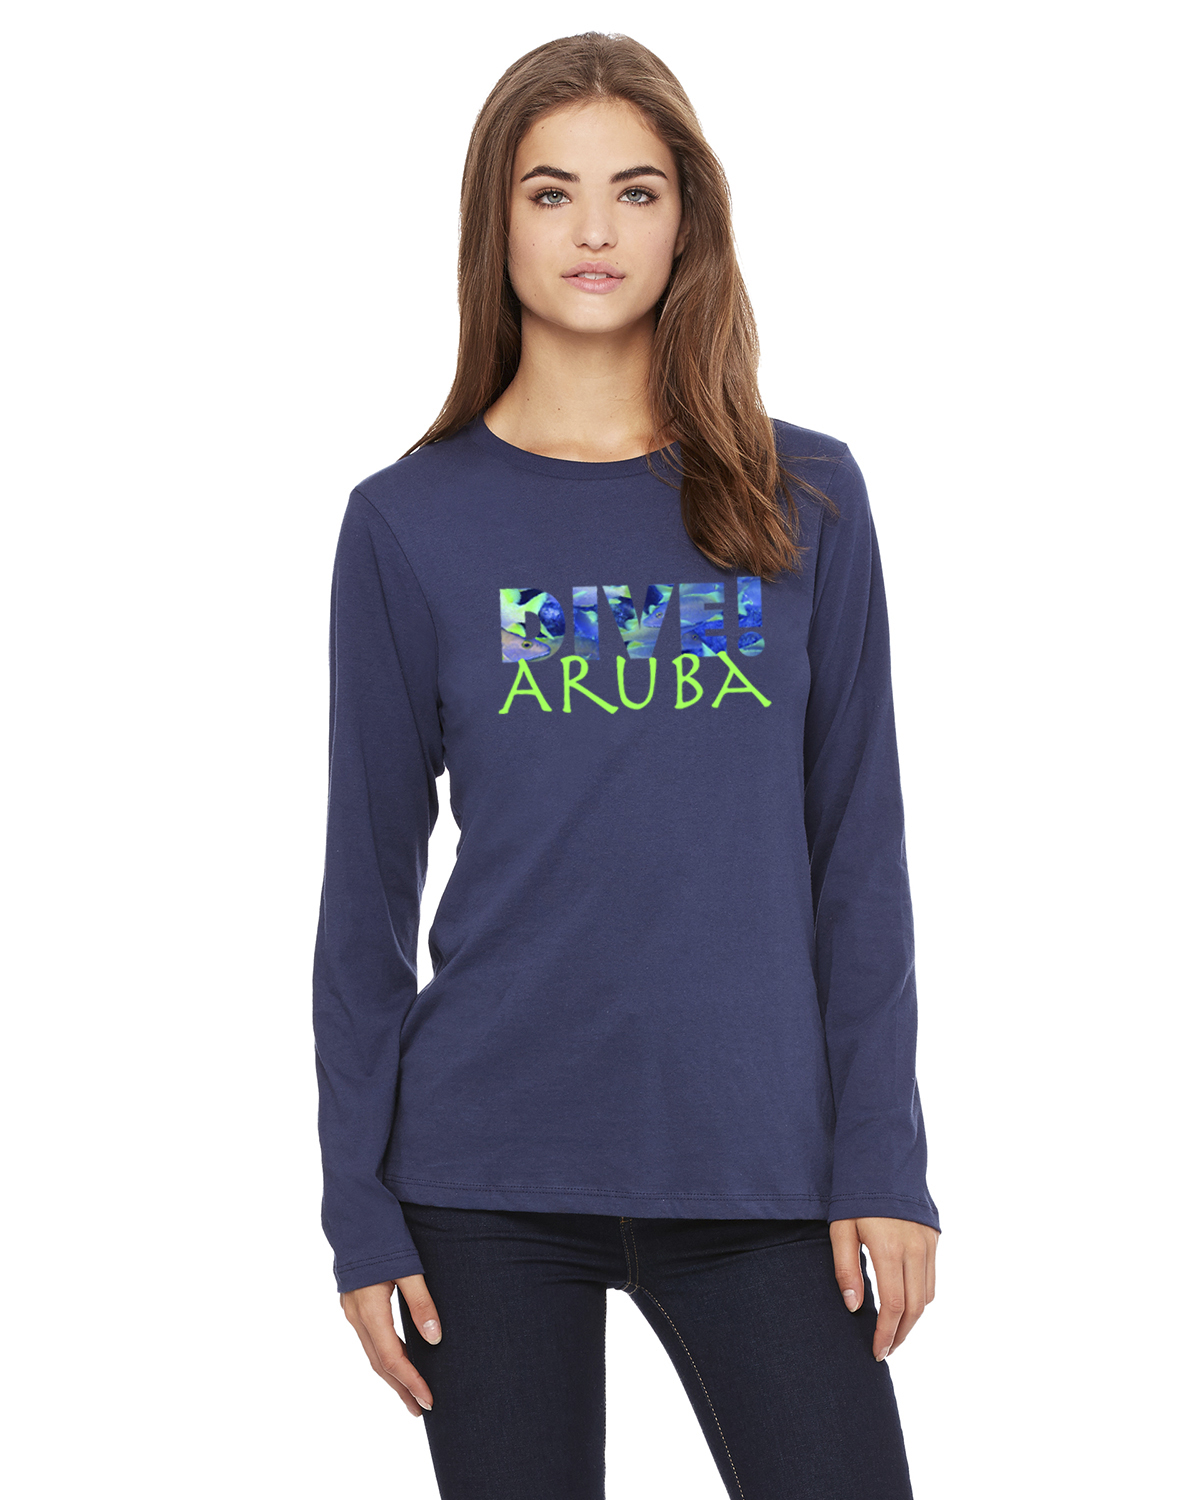 Women's Long Sleeve DIVE Aruba T-Shirt (Navy)